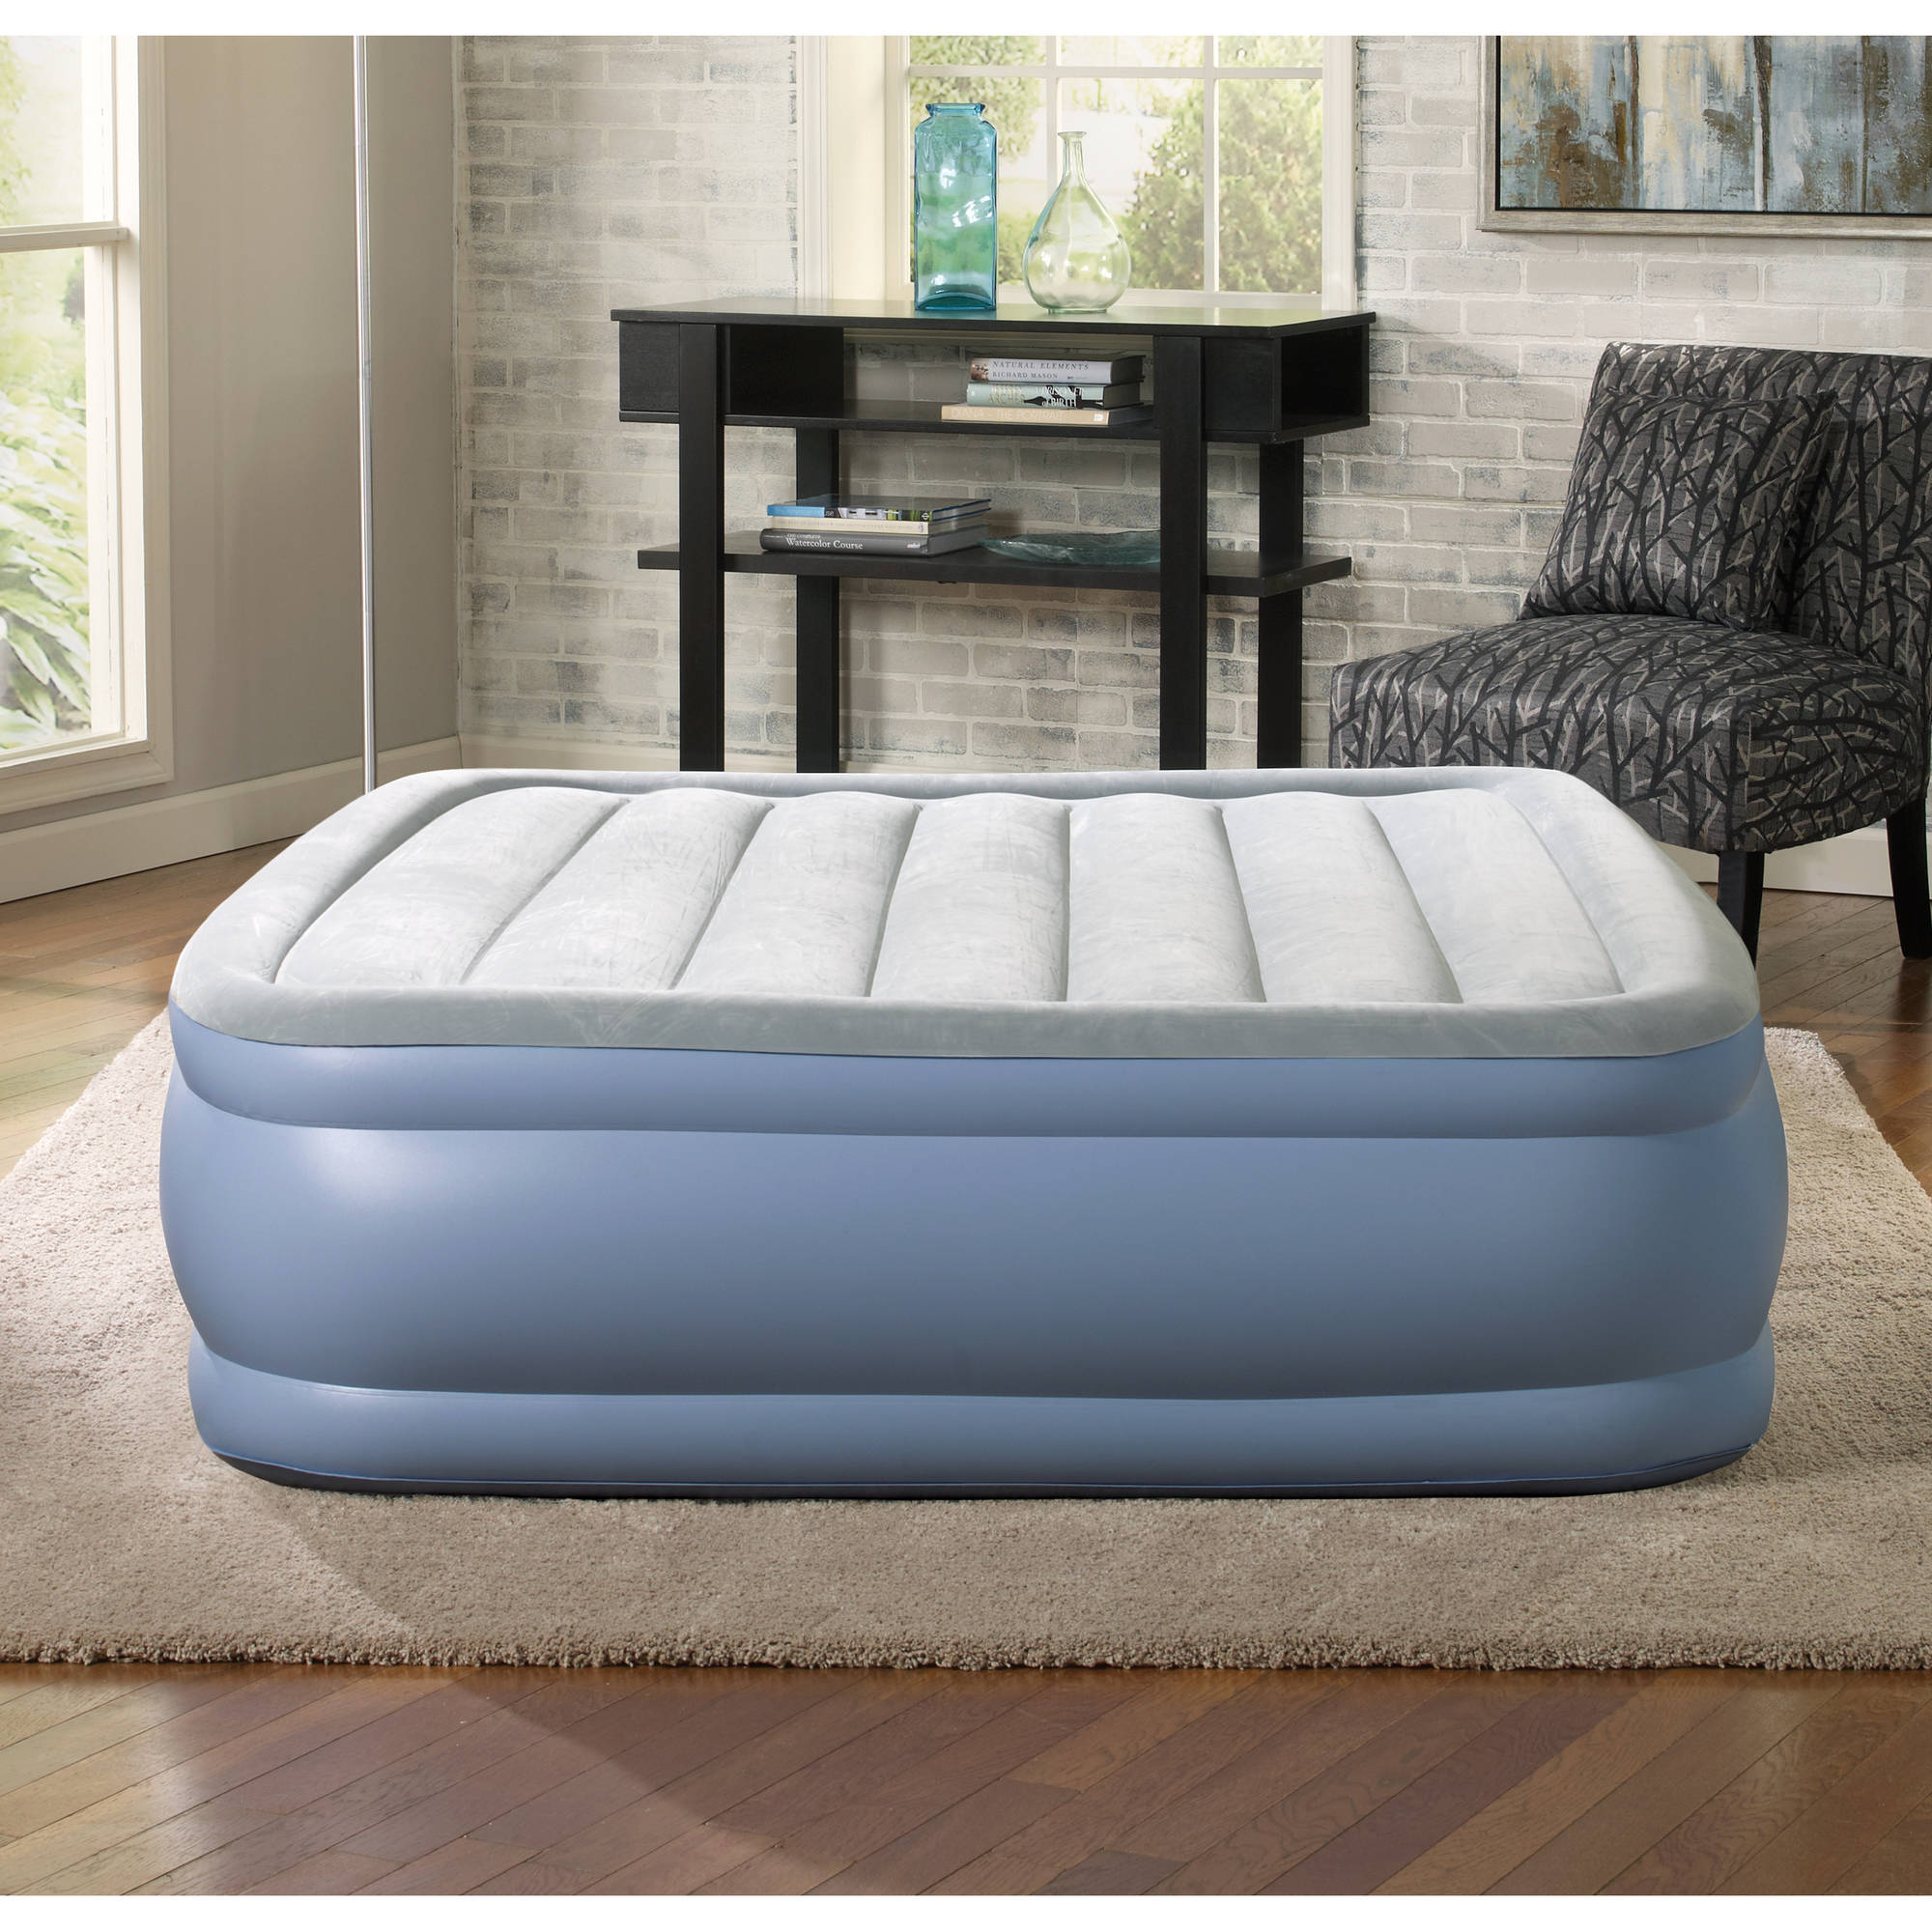 queen and size mattress furniture memory foam inch latex info oceantailer bedding category